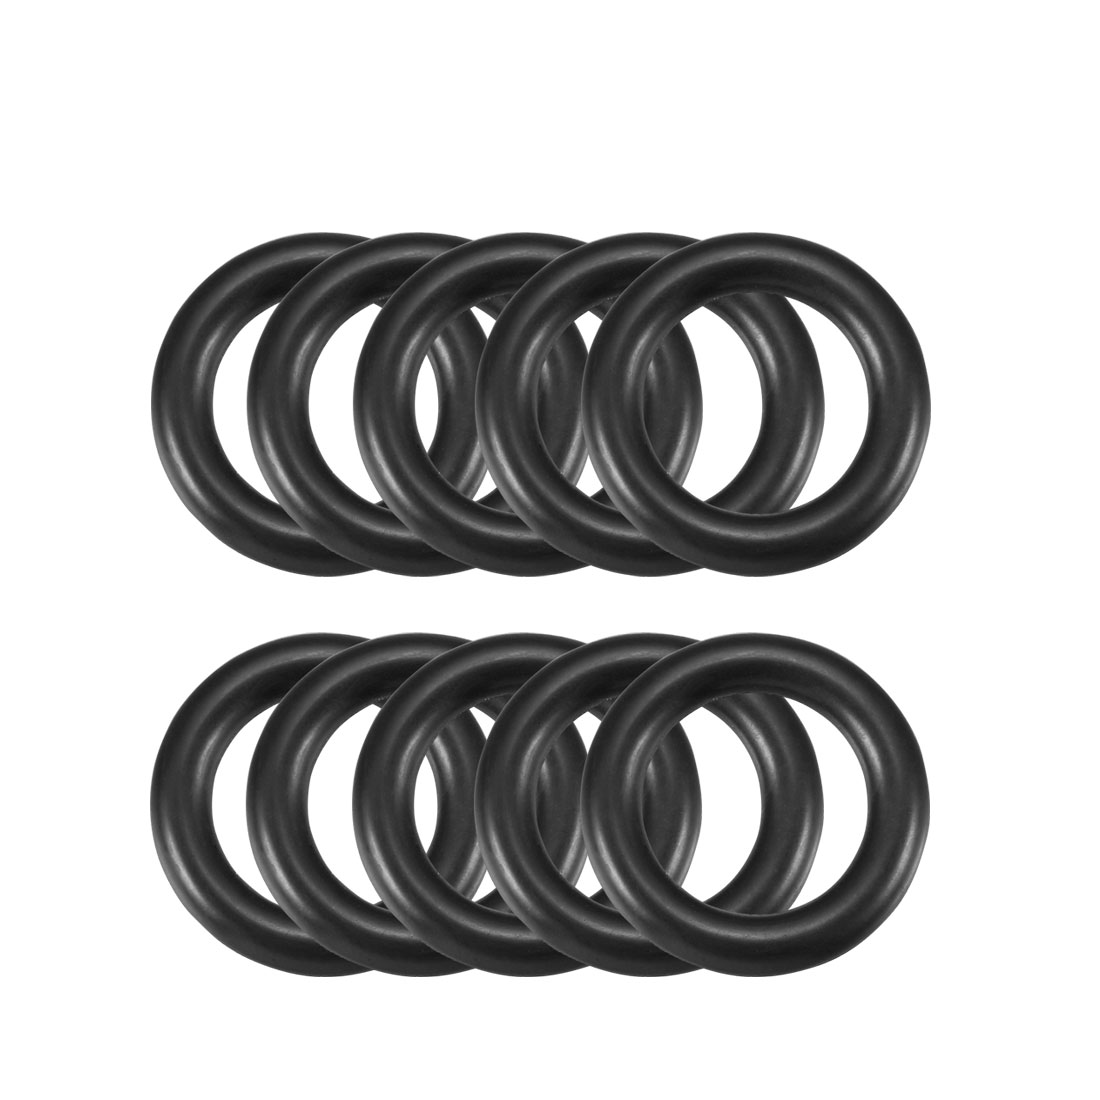 10-Pcs-Oil-Seal-O-Rings-Black-Nitrile-Rubber-22mm-OD-4mm-Thickness